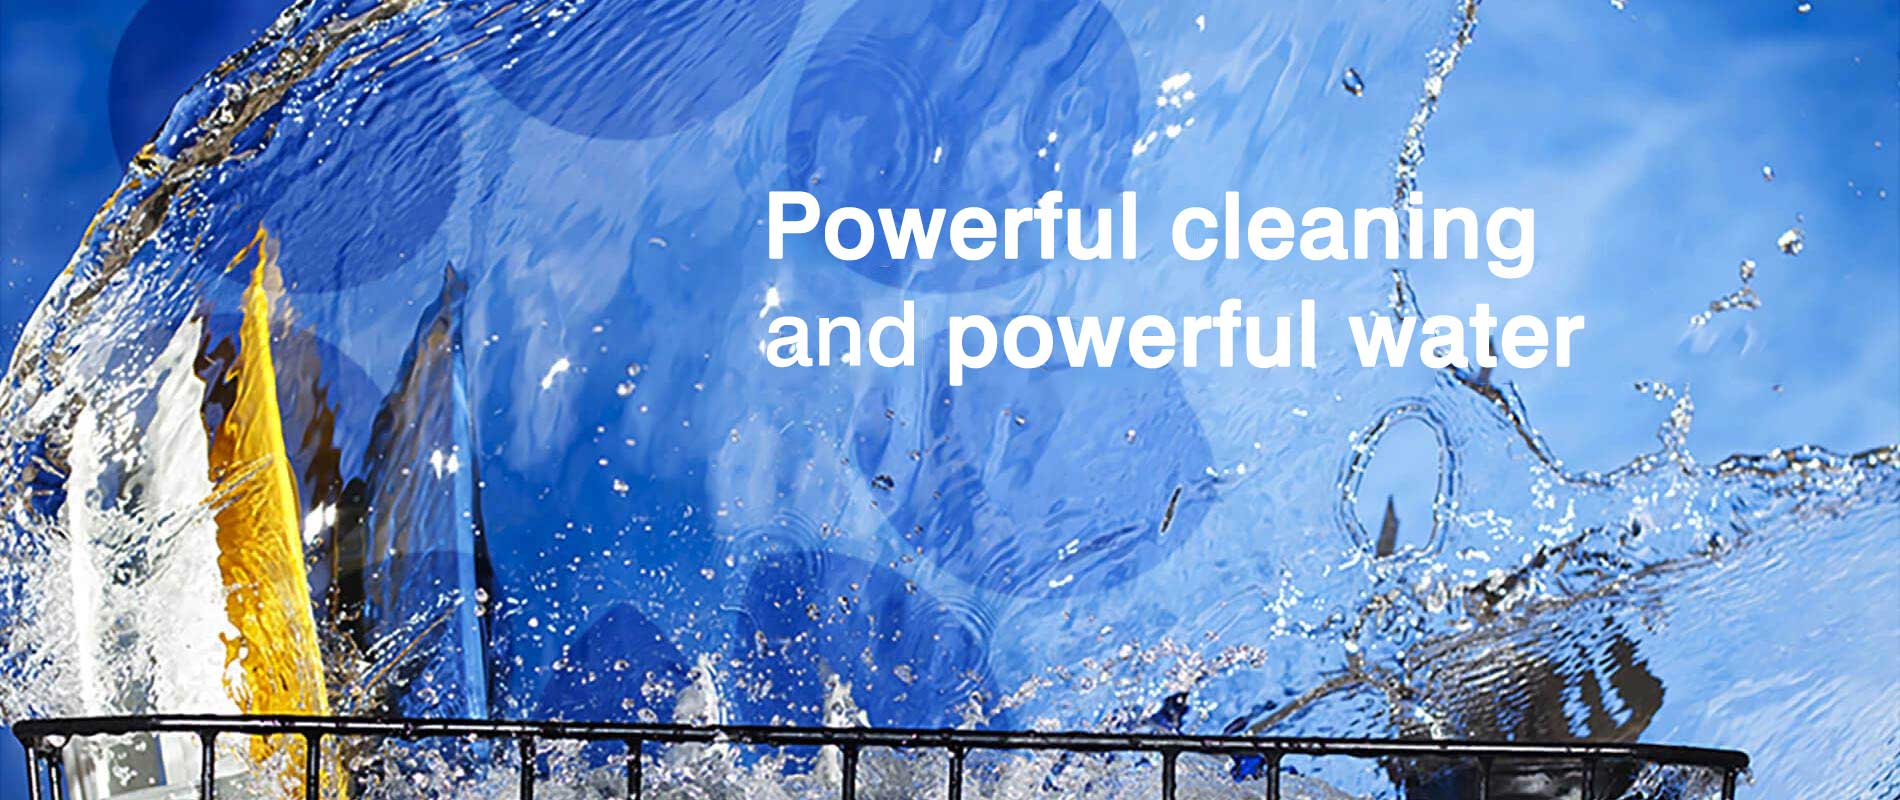 Powerfull cleaning with solar heated water